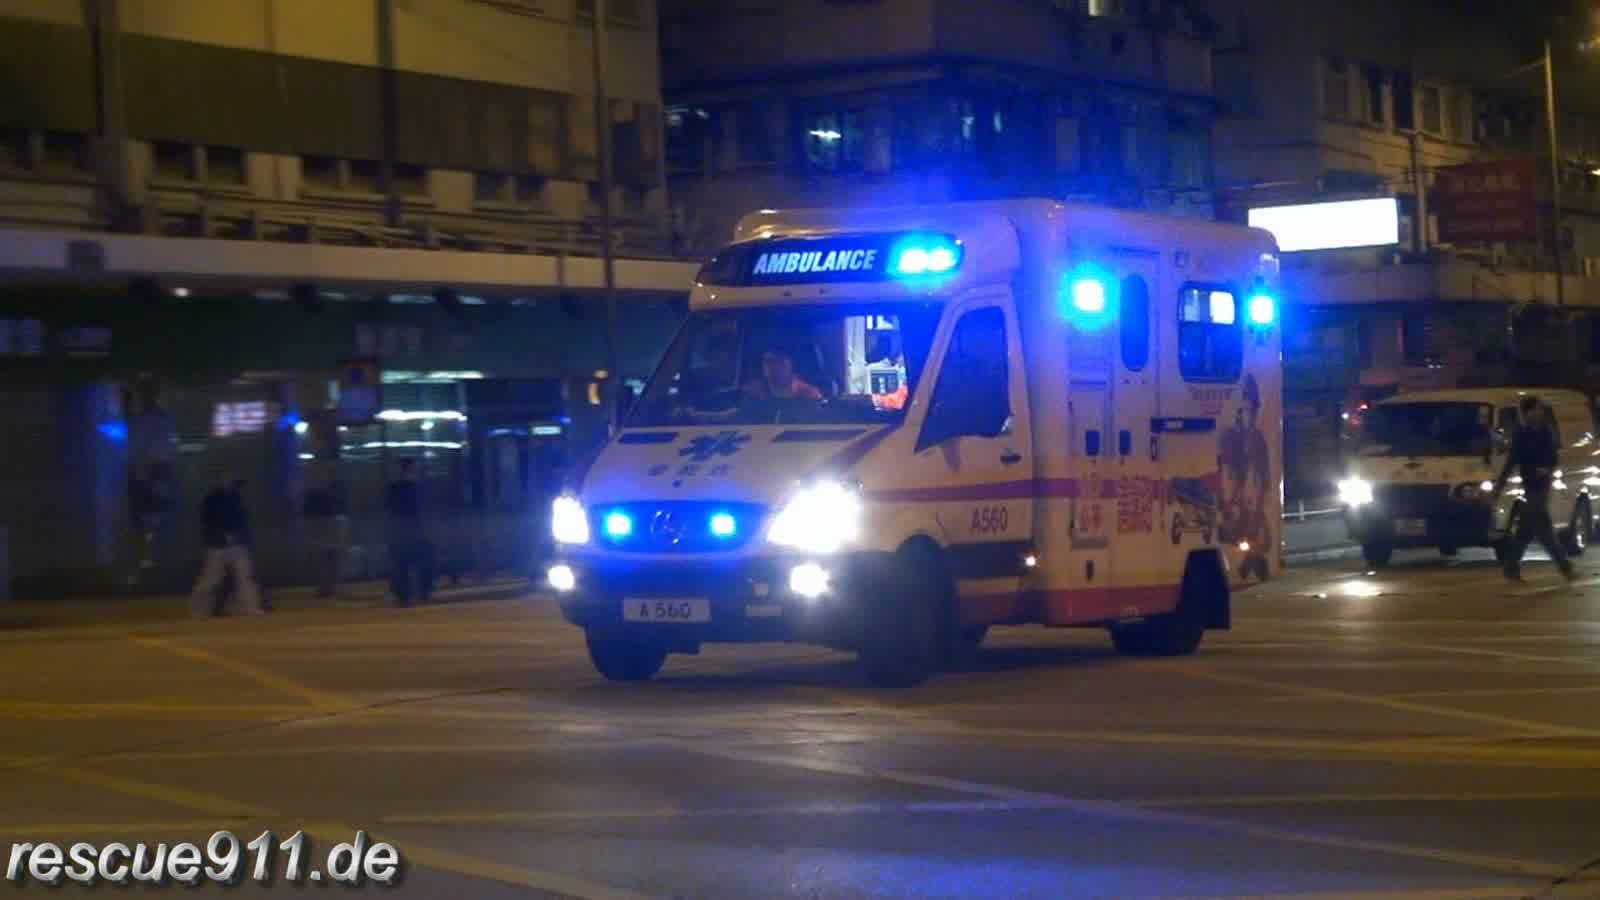 Ambulance Hongkong Fire Services Department (collection) (stream)